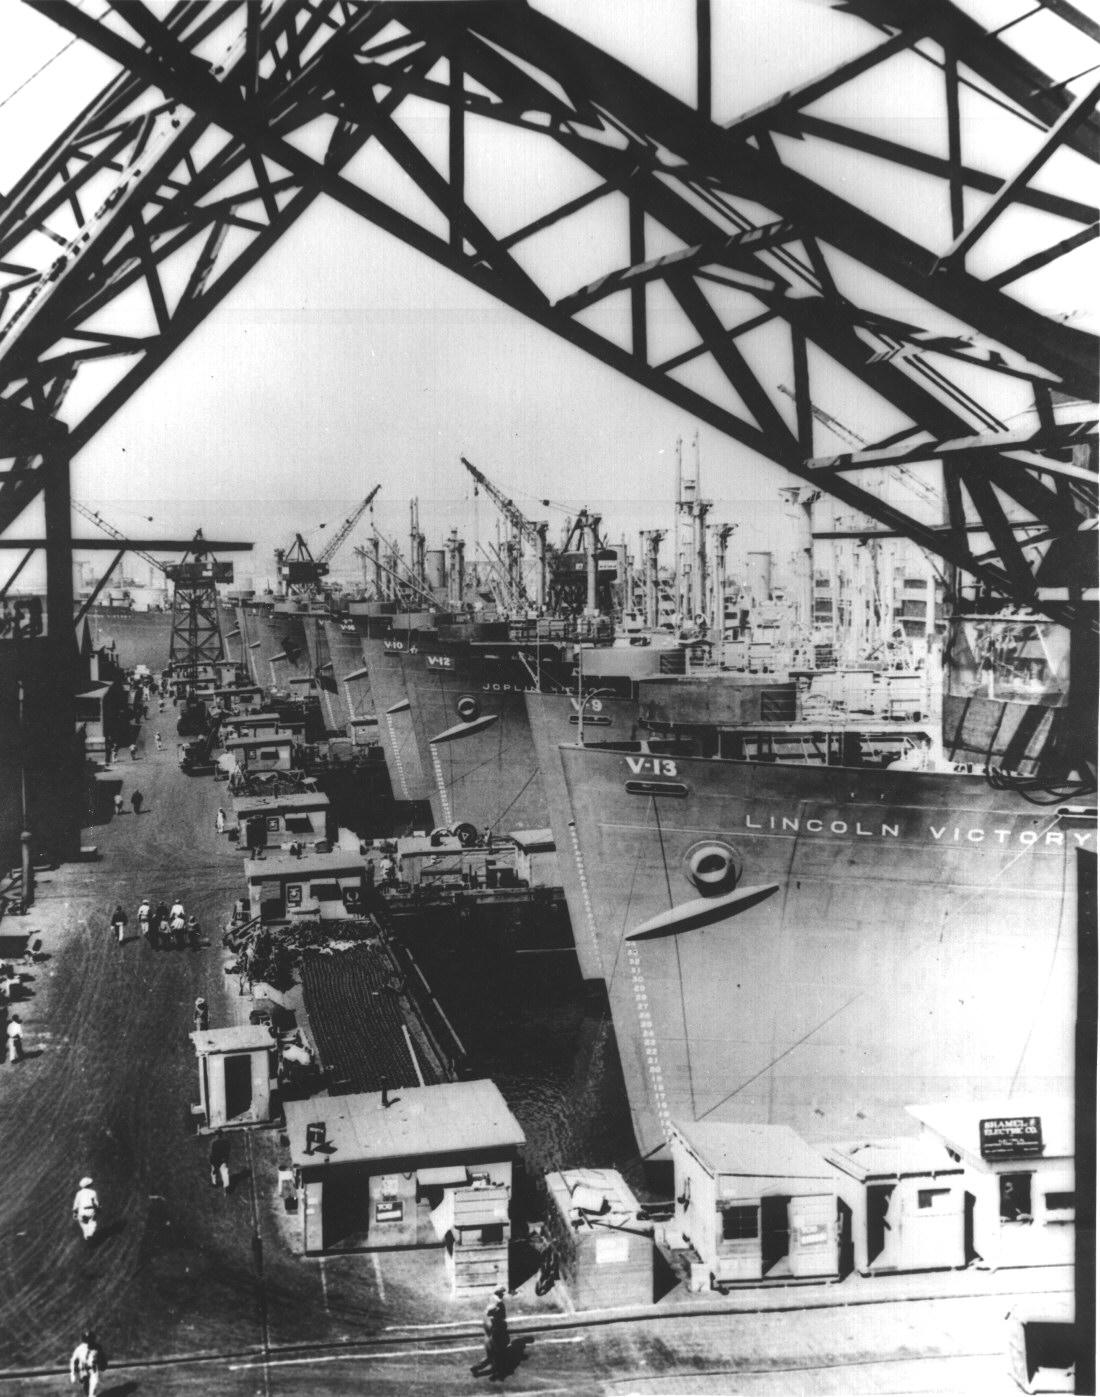 Victory cargo ships are lined up at a U.S. west coast shipyard for final outfitting before they are loaded with supplies for Navy depots and advance bases in the Pacific.